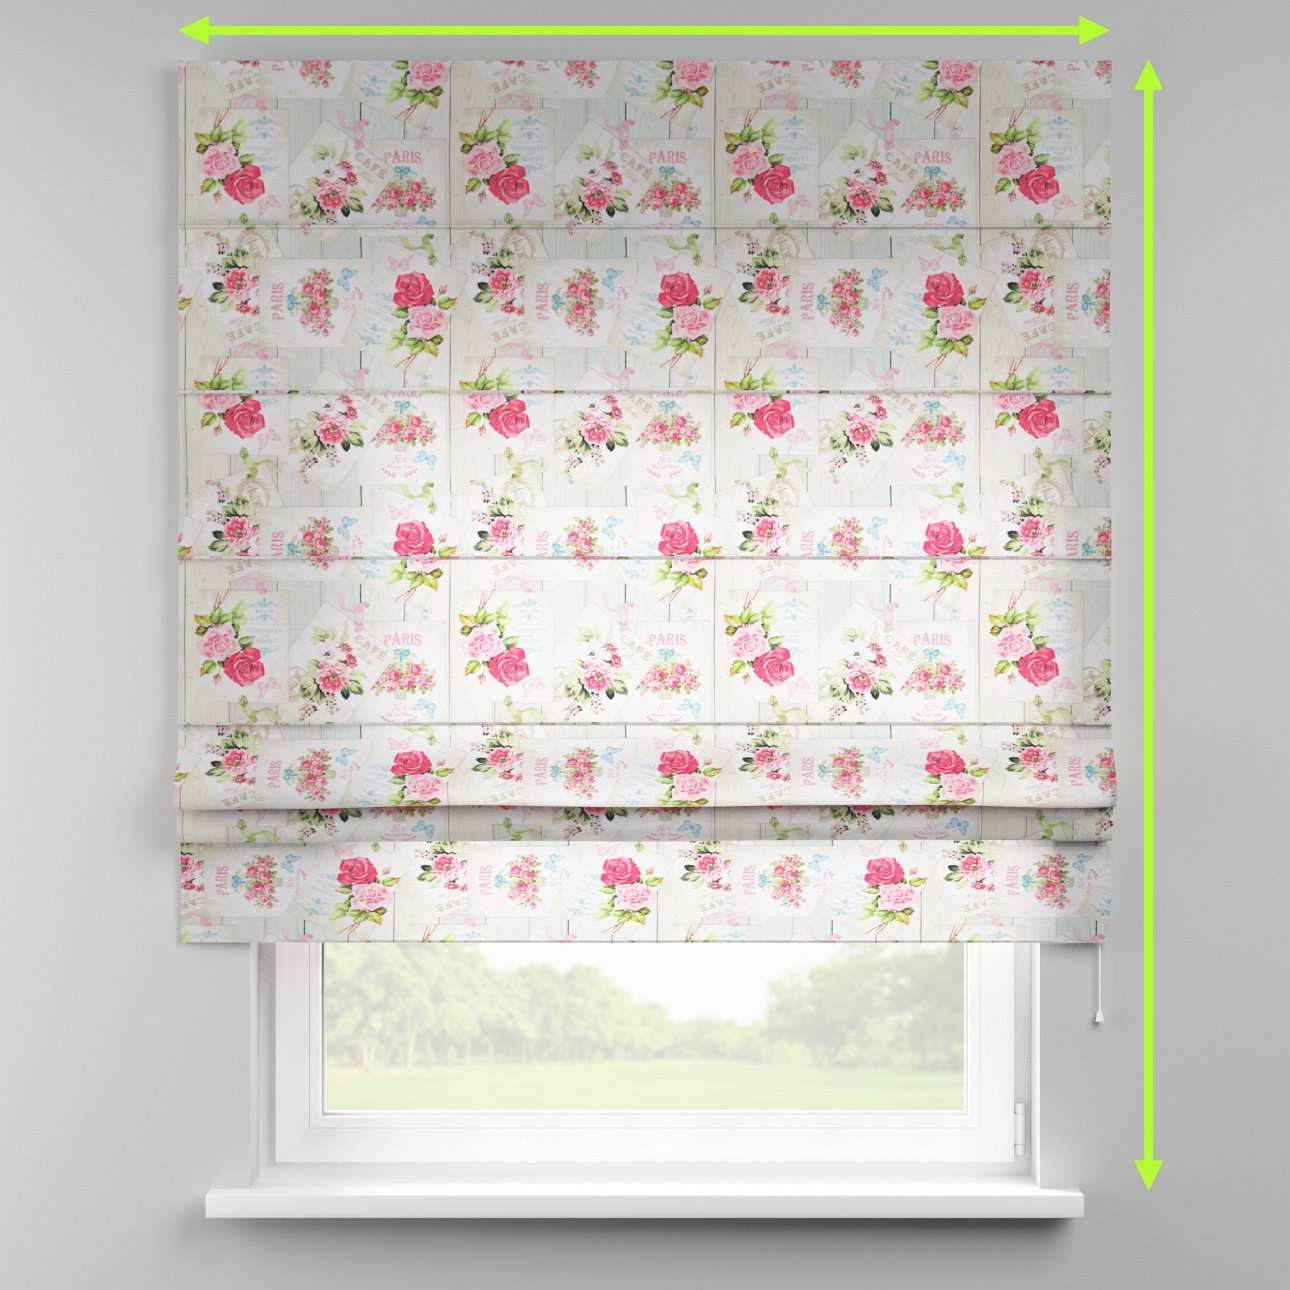 Padva roman blind  in collection Ashley, fabric: 140-19